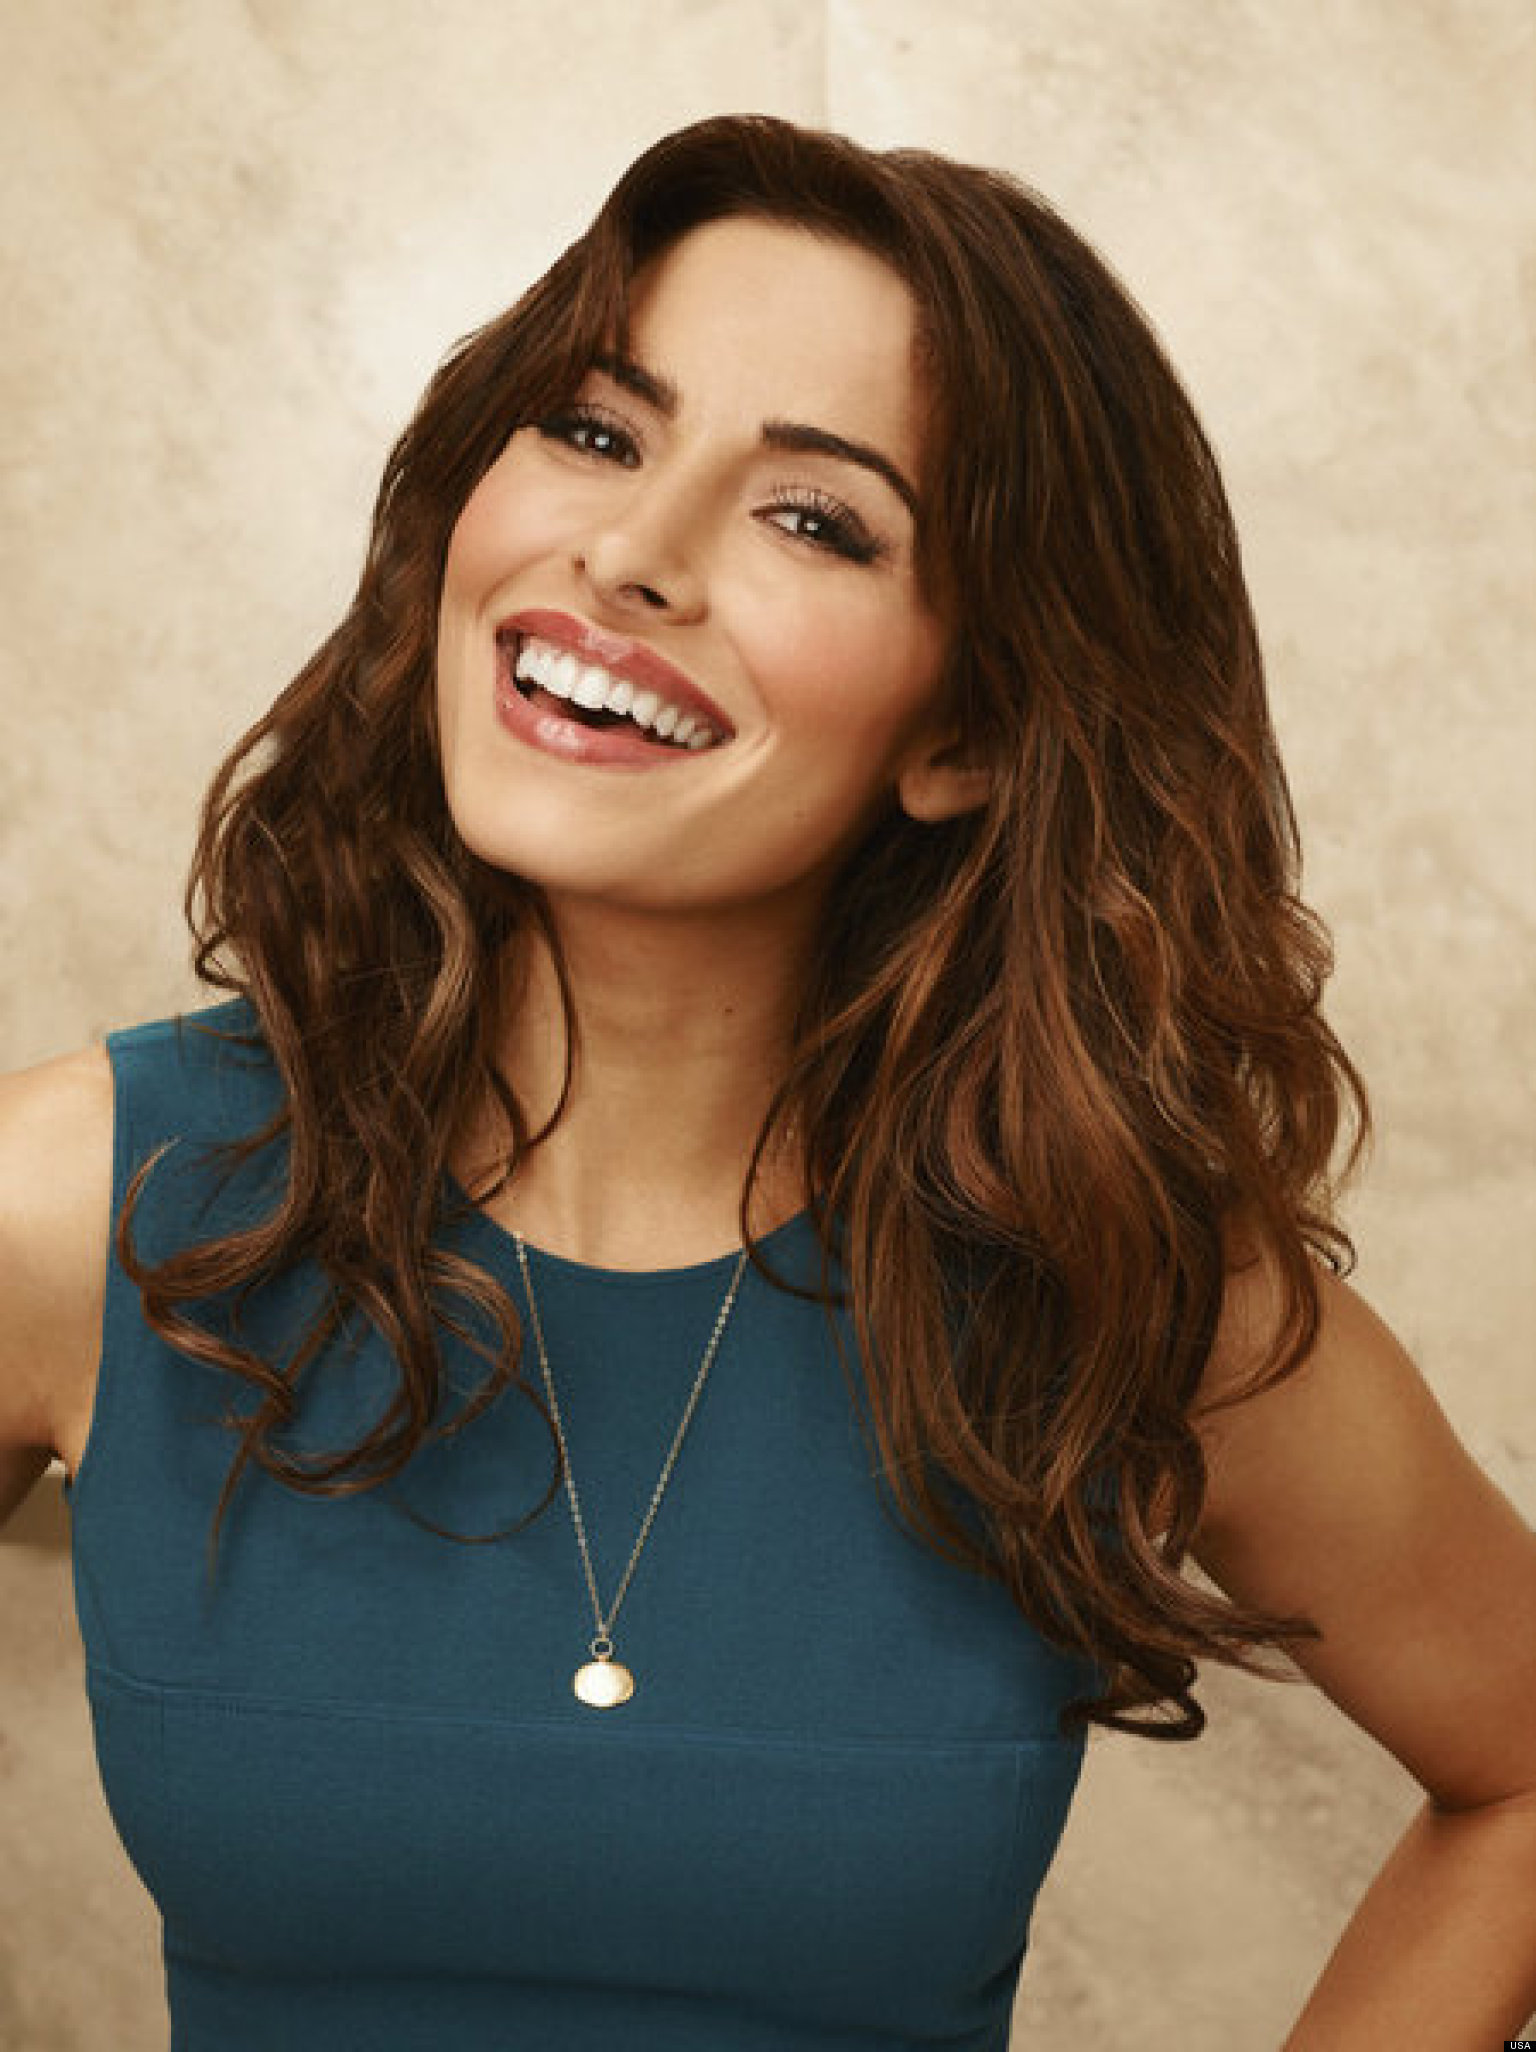 Sarah Shahi Joins 'Chicago Fire' And More Casting News ...